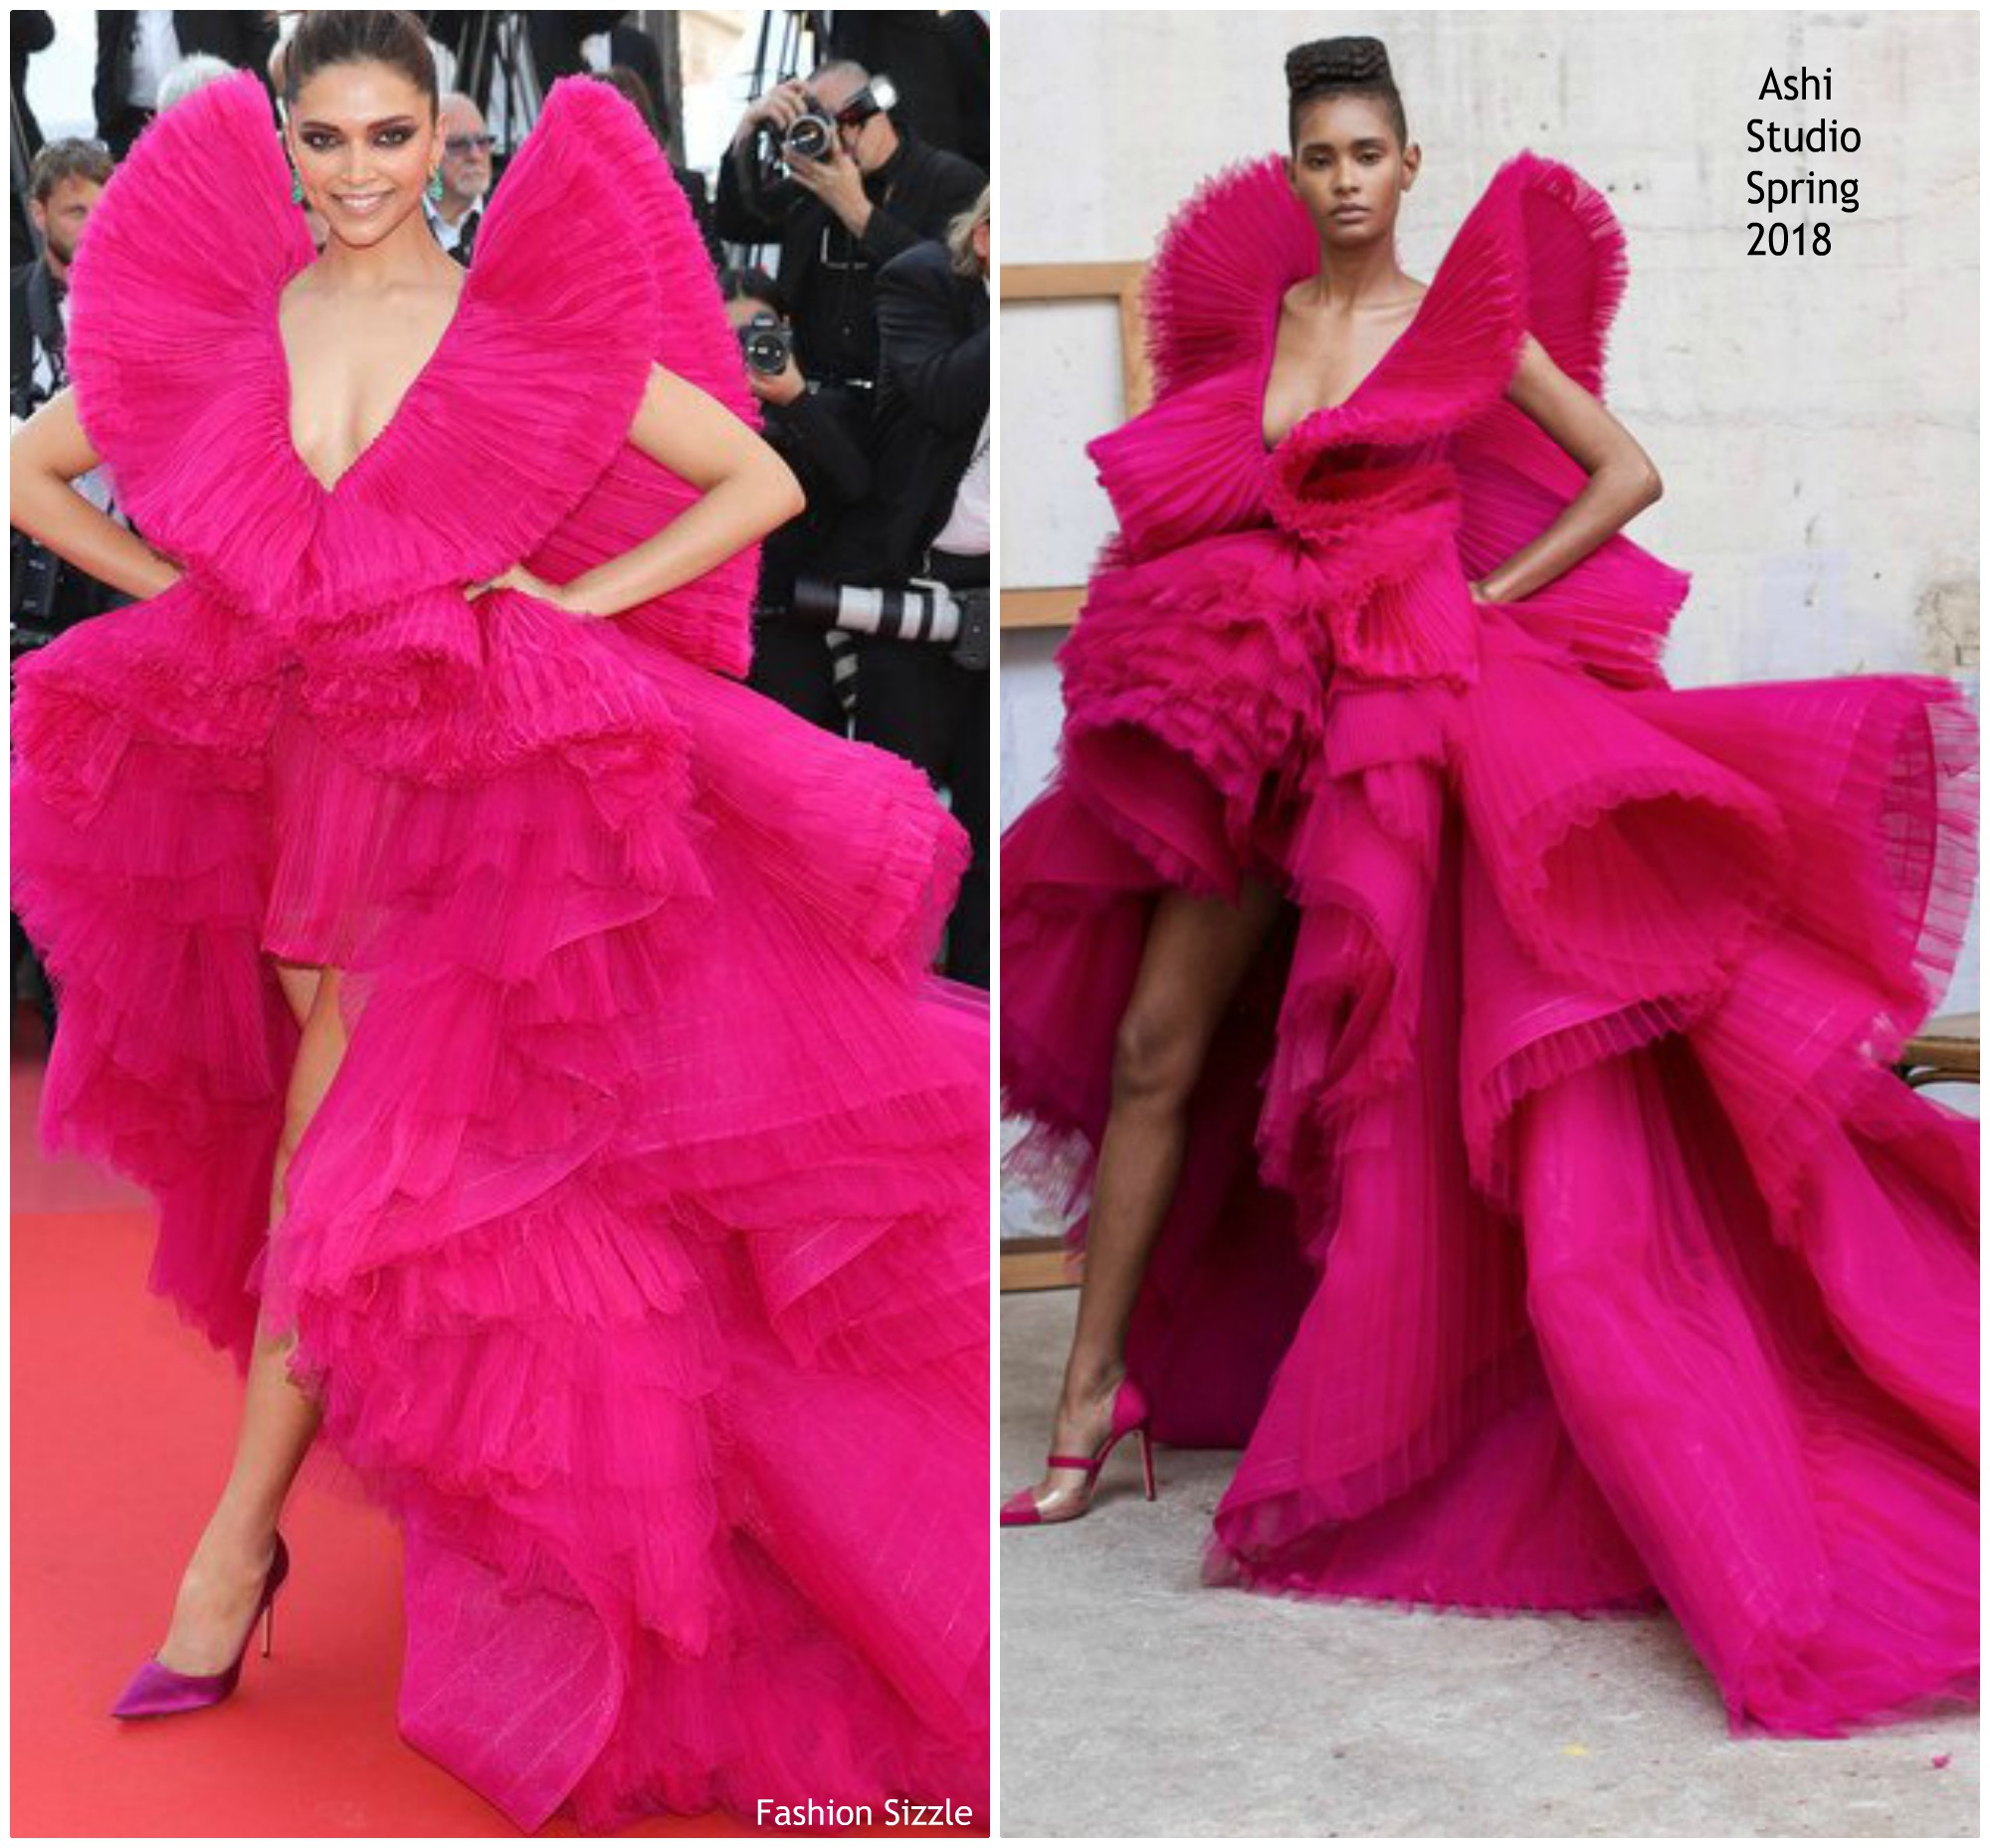 deepika-padukone-in-ashi-studio-ash-is-the-purest-white-jiang-hu-er-nv-cannes-film-festival-premiere